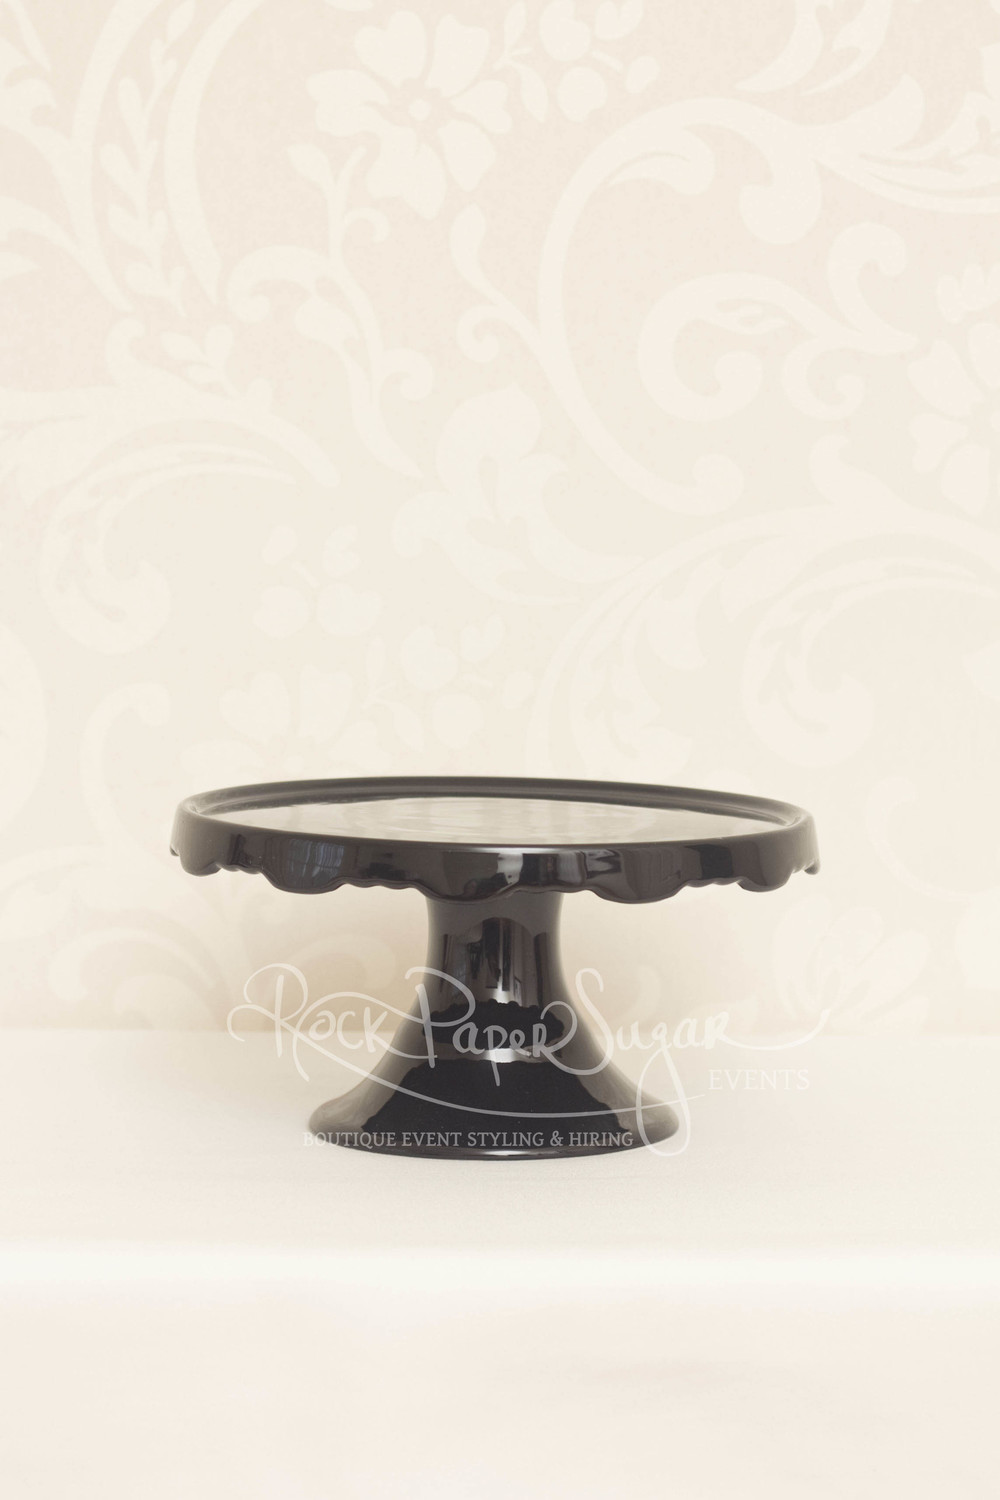 Rock Paper Sugar Events Cake Stands 003.jpg